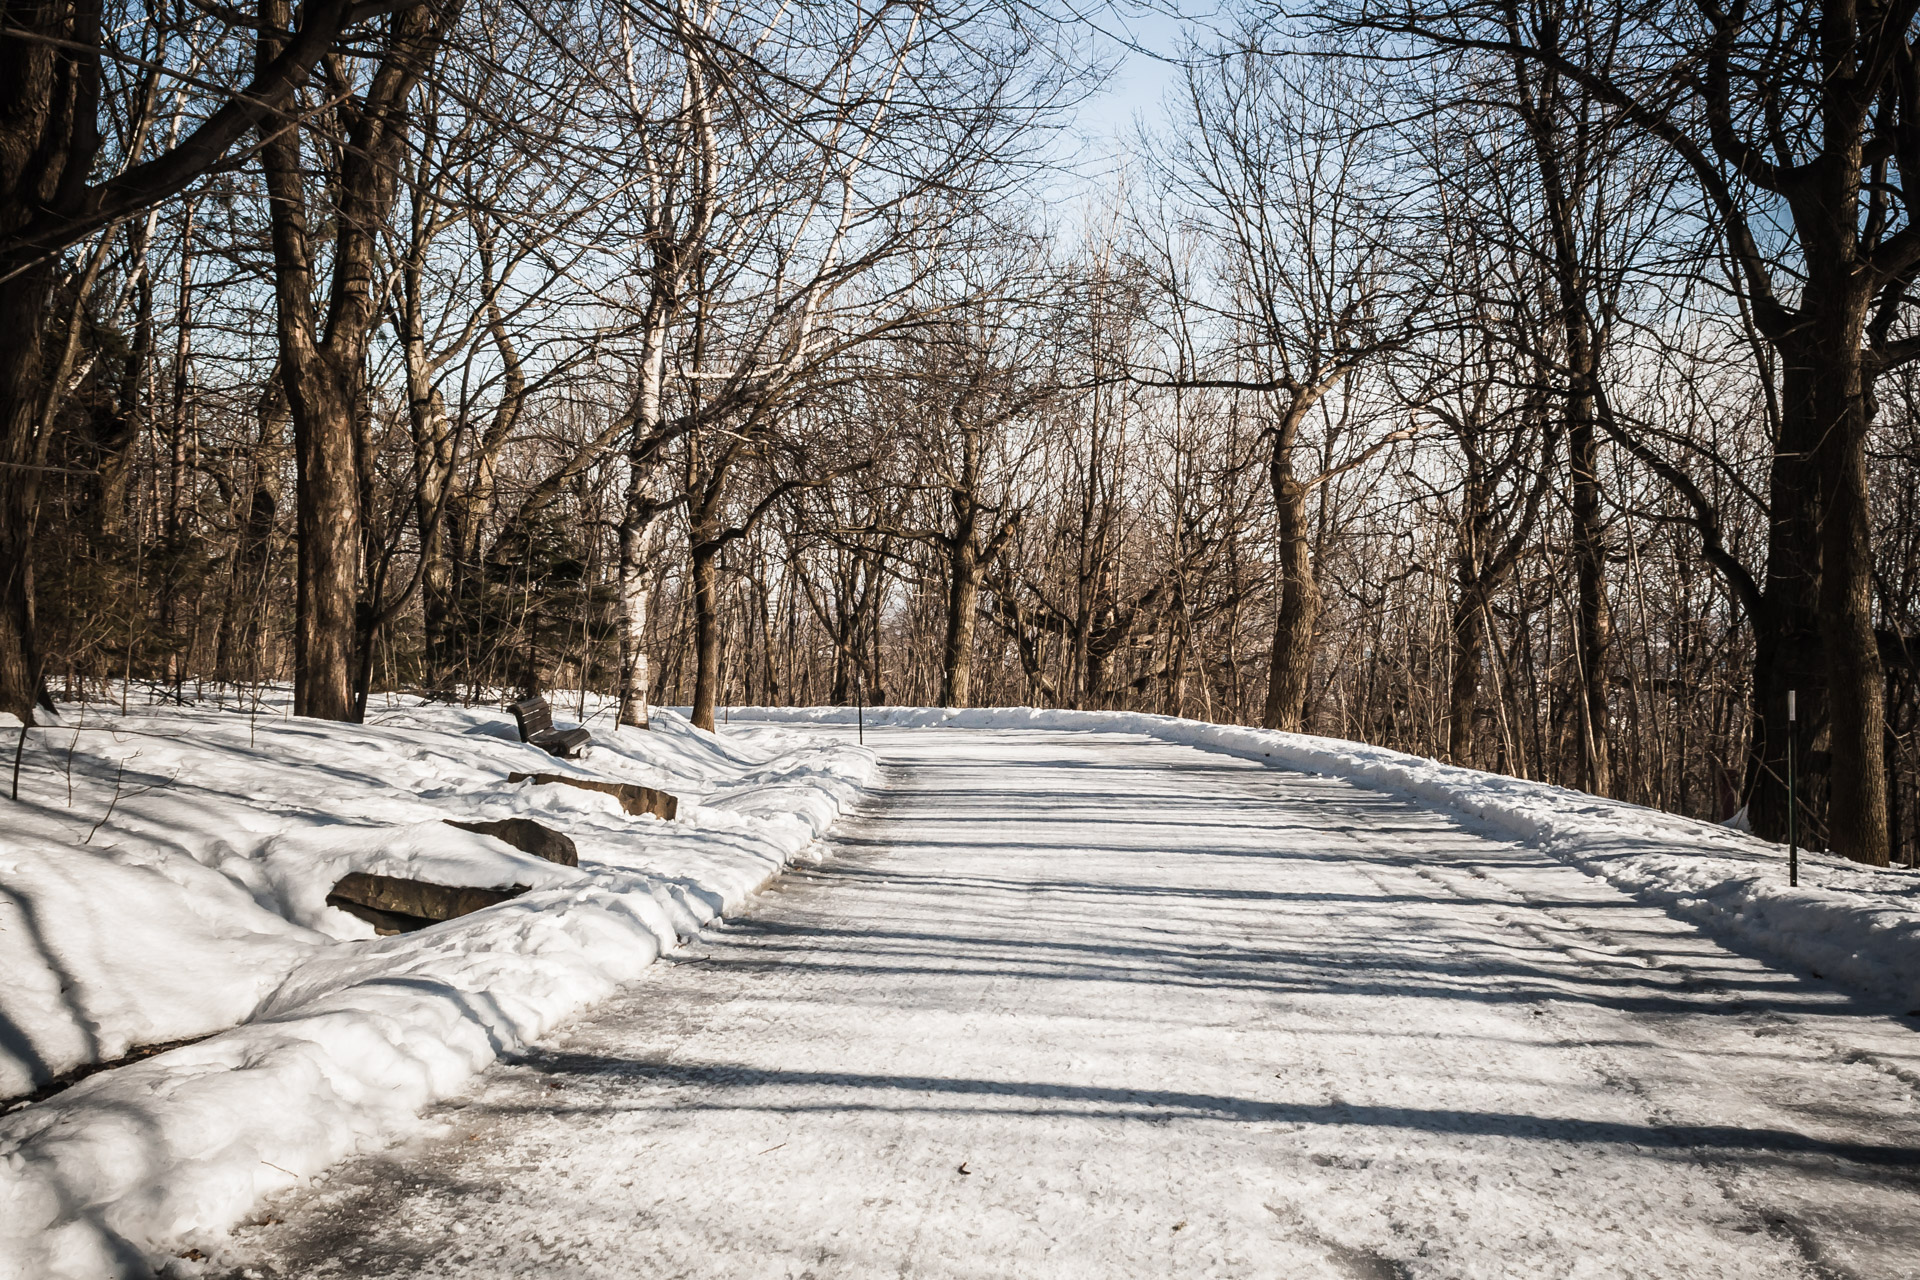 Finding Home In A Travel Destination (snowy path)